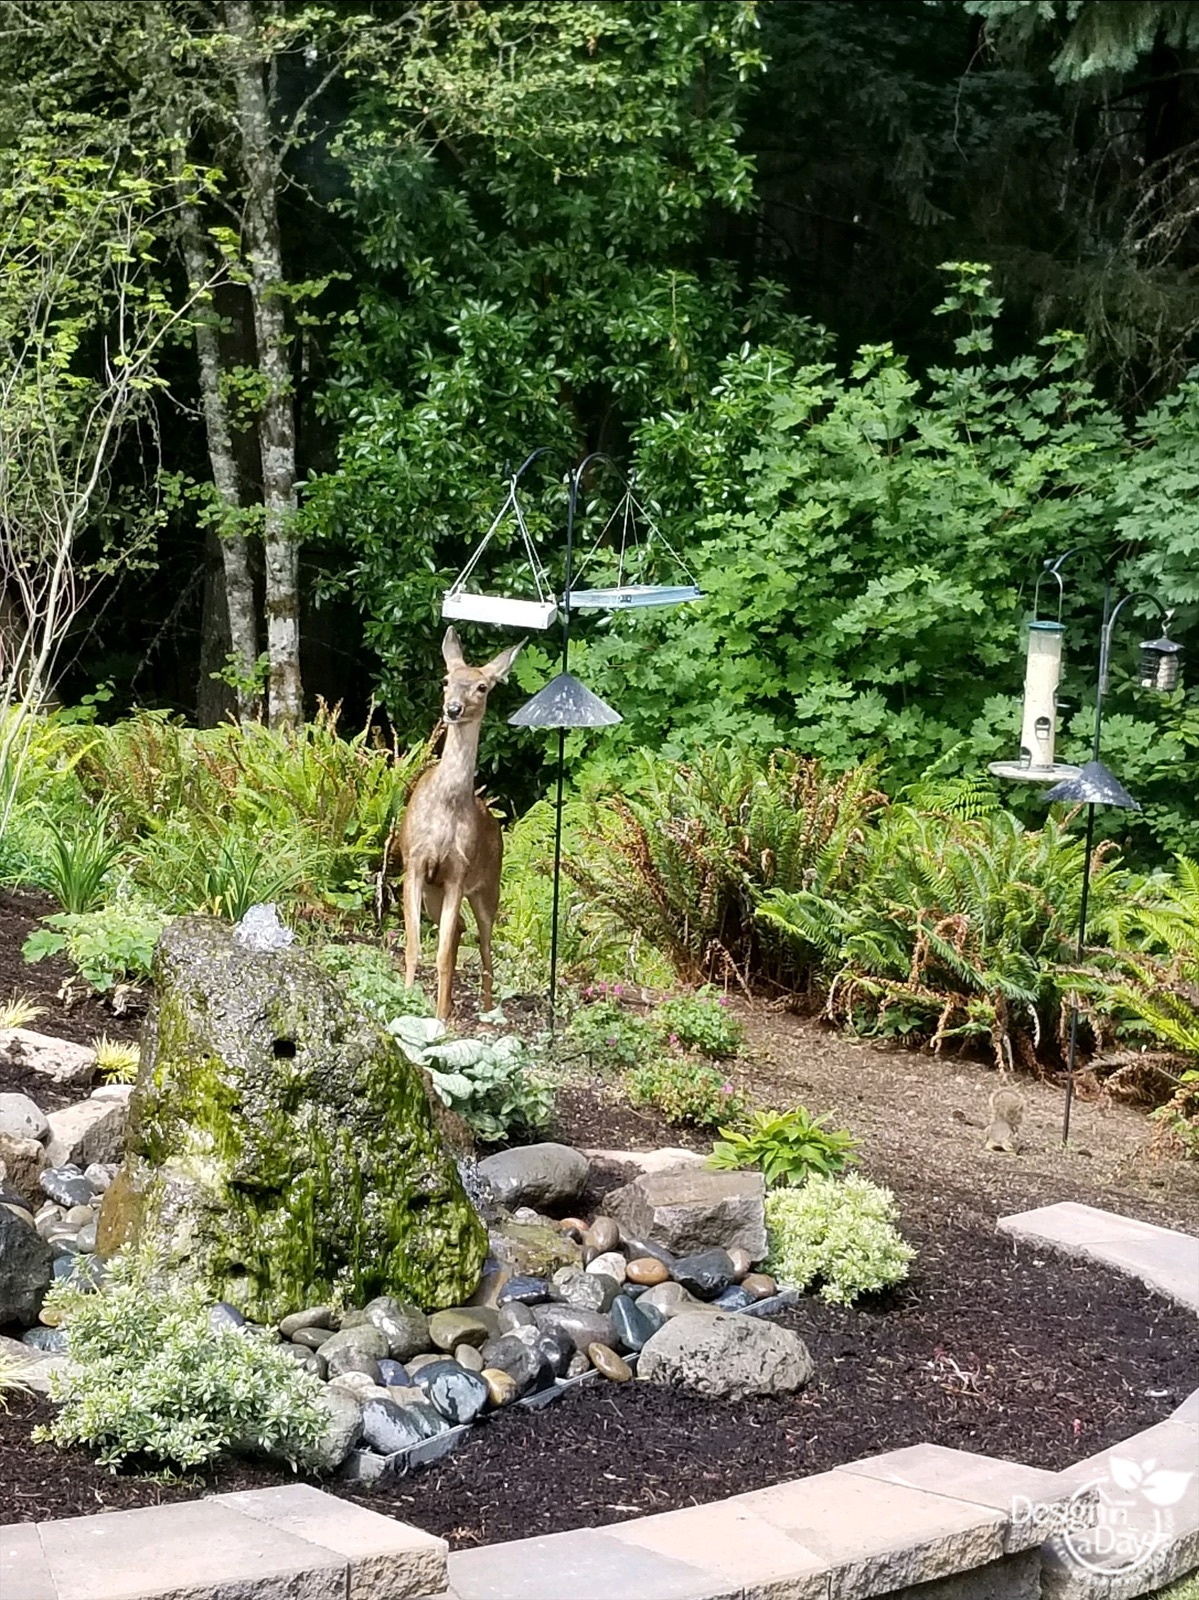 This Portland garden attracts wildlife with bird food and water.